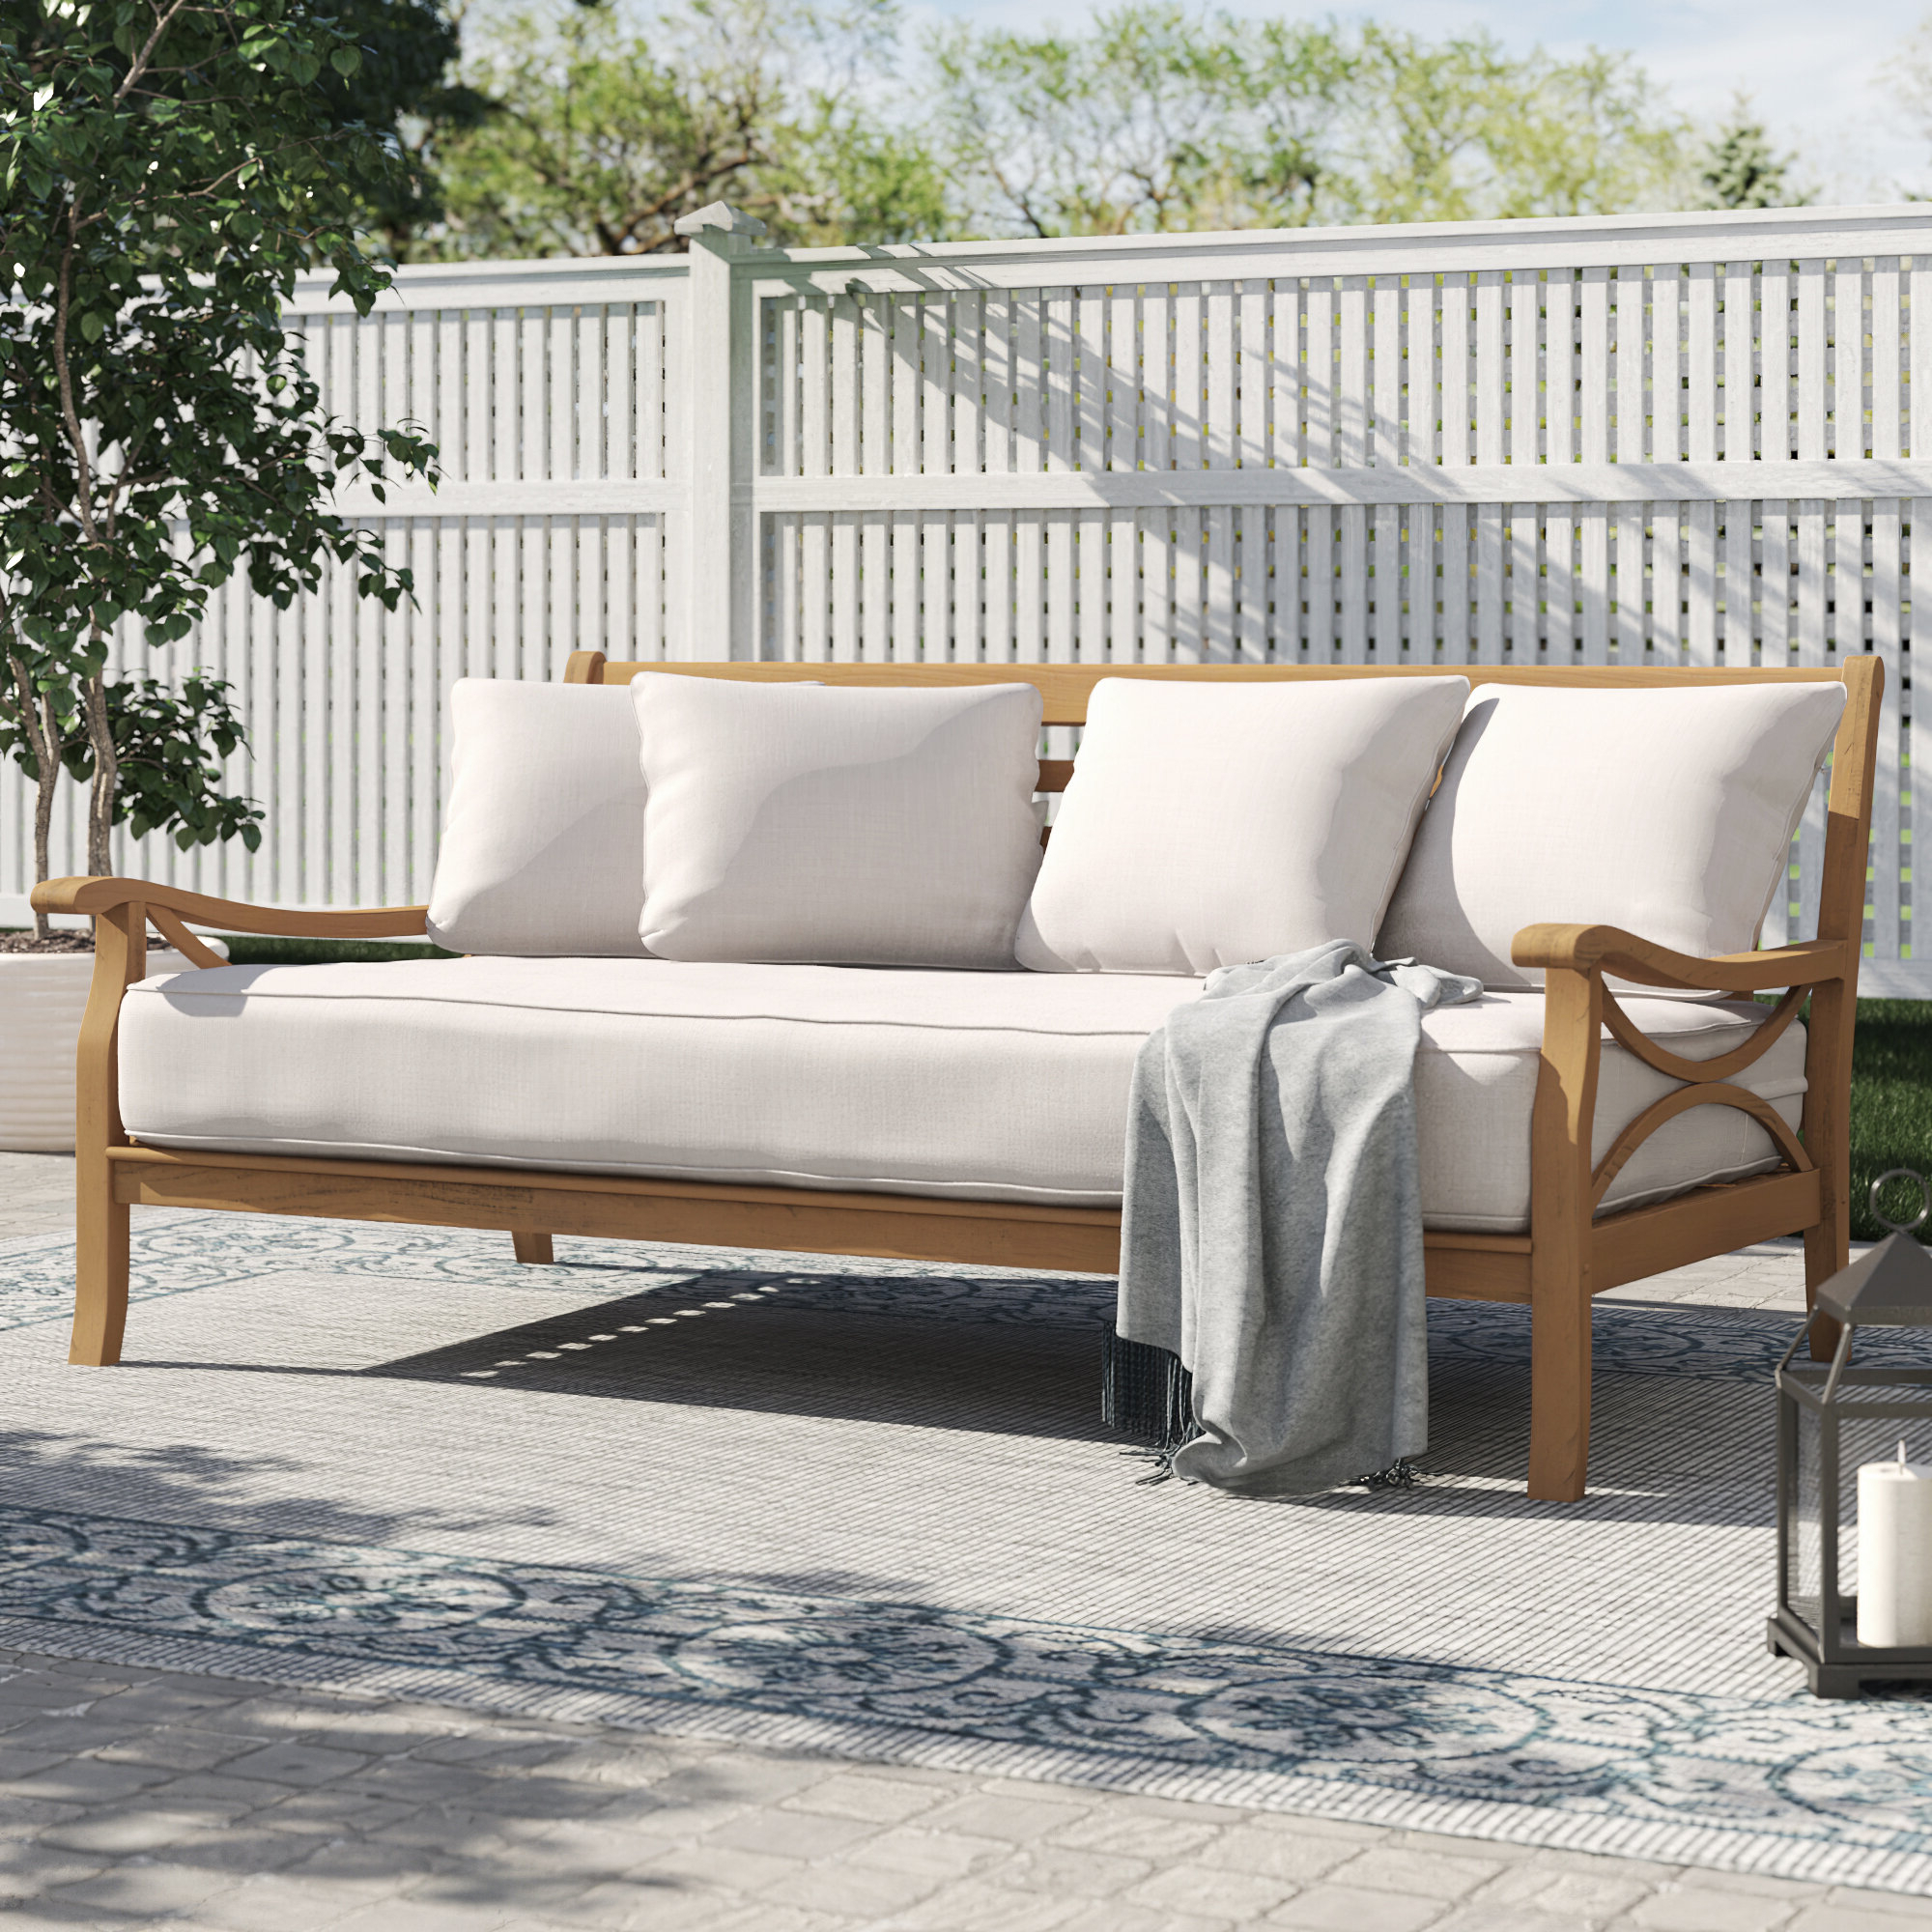 Brunswick Teak Patio Daybed With Cushions Intended For Fashionable Dowling Patio Daybeds With Cushion (View 18 of 25)